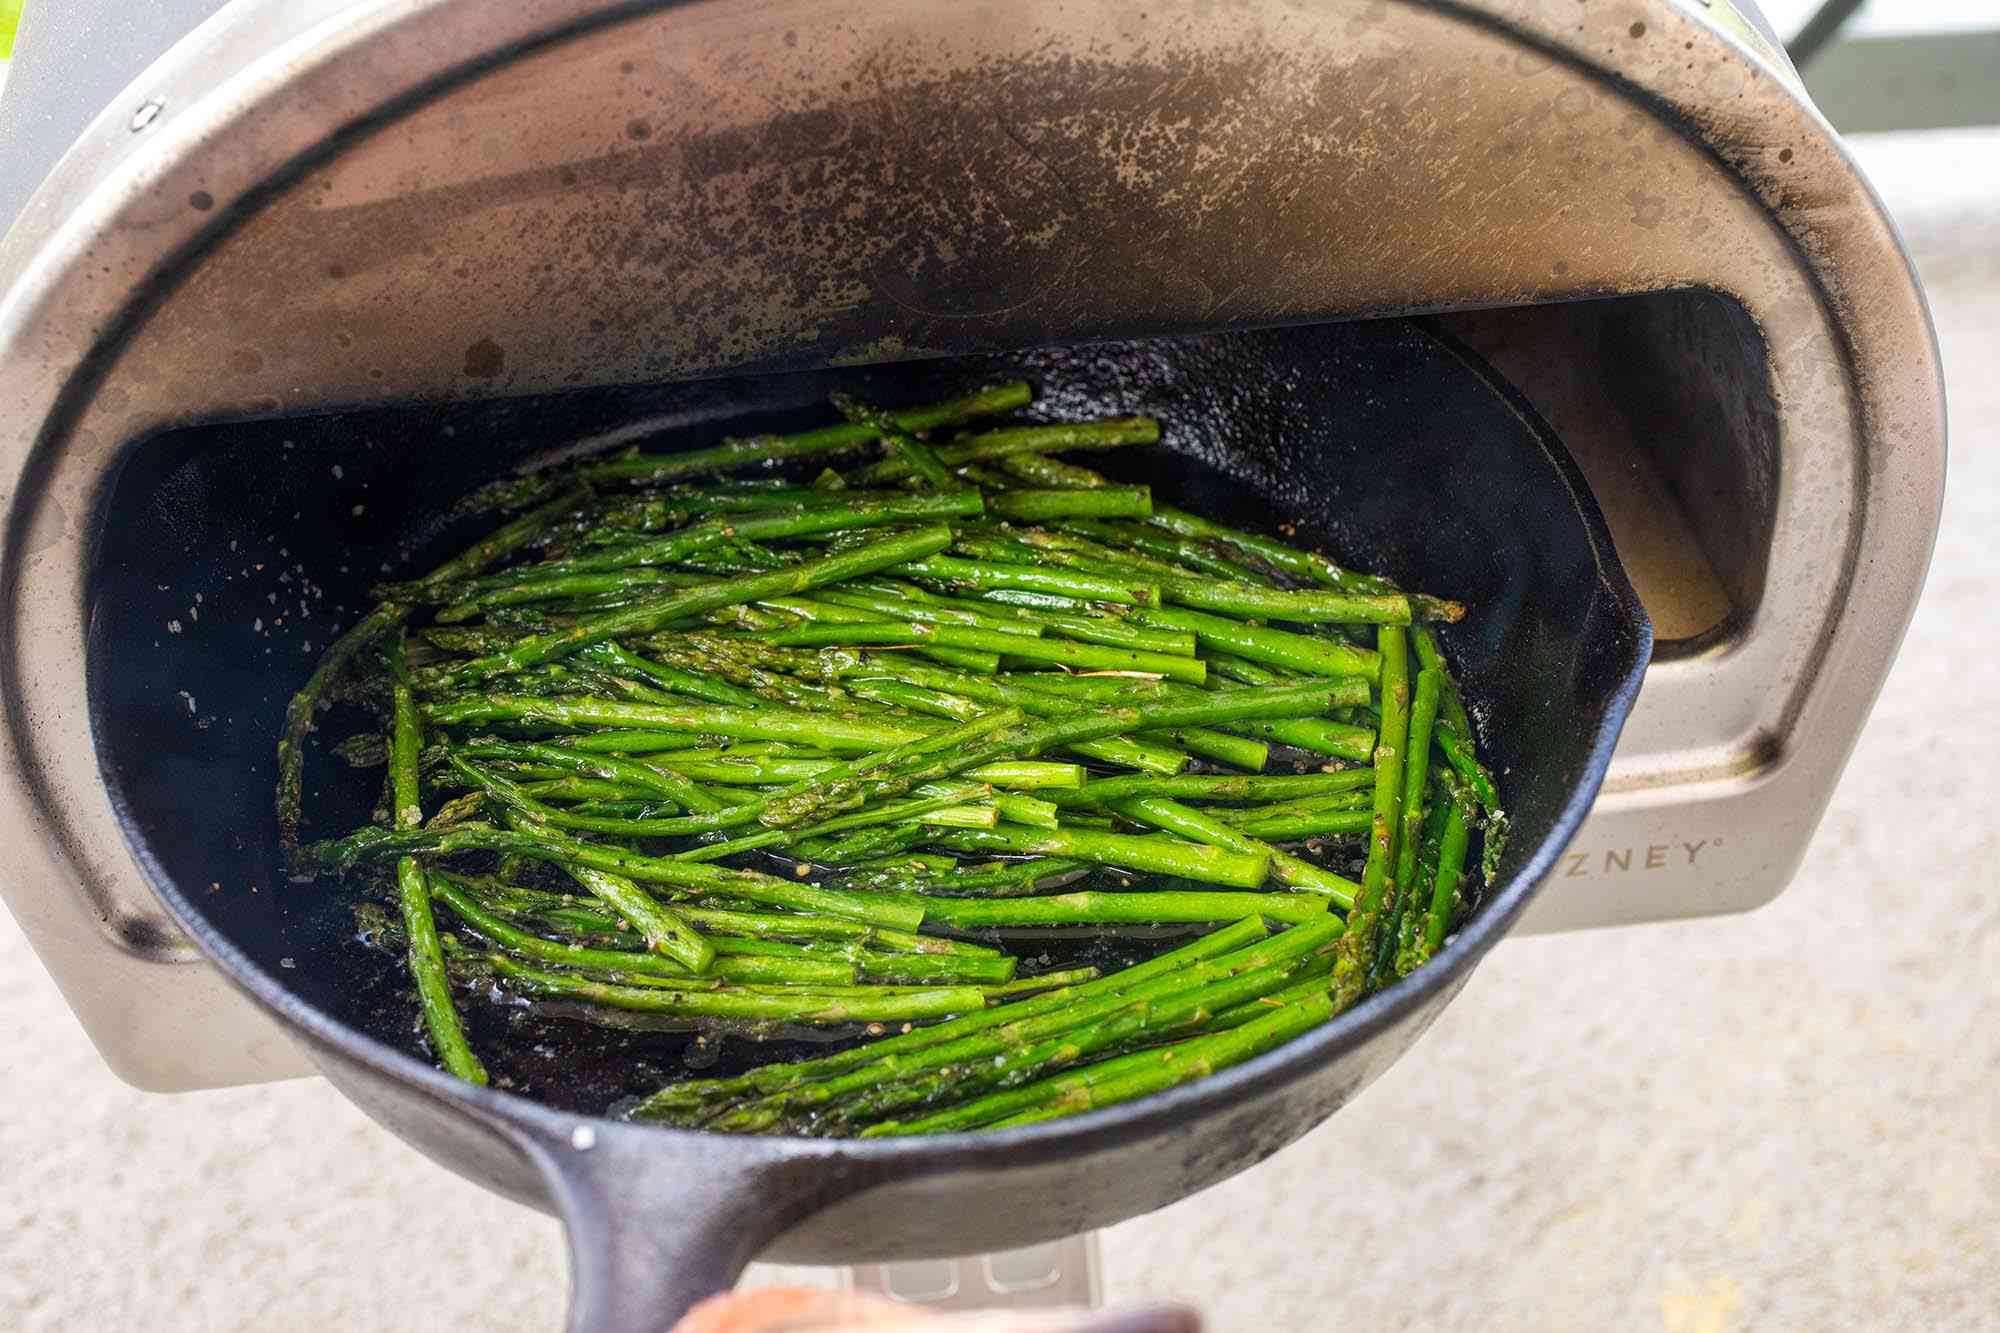 Roccbox pizza oven with a cast iron skillet of asparagus being pulled out of it.